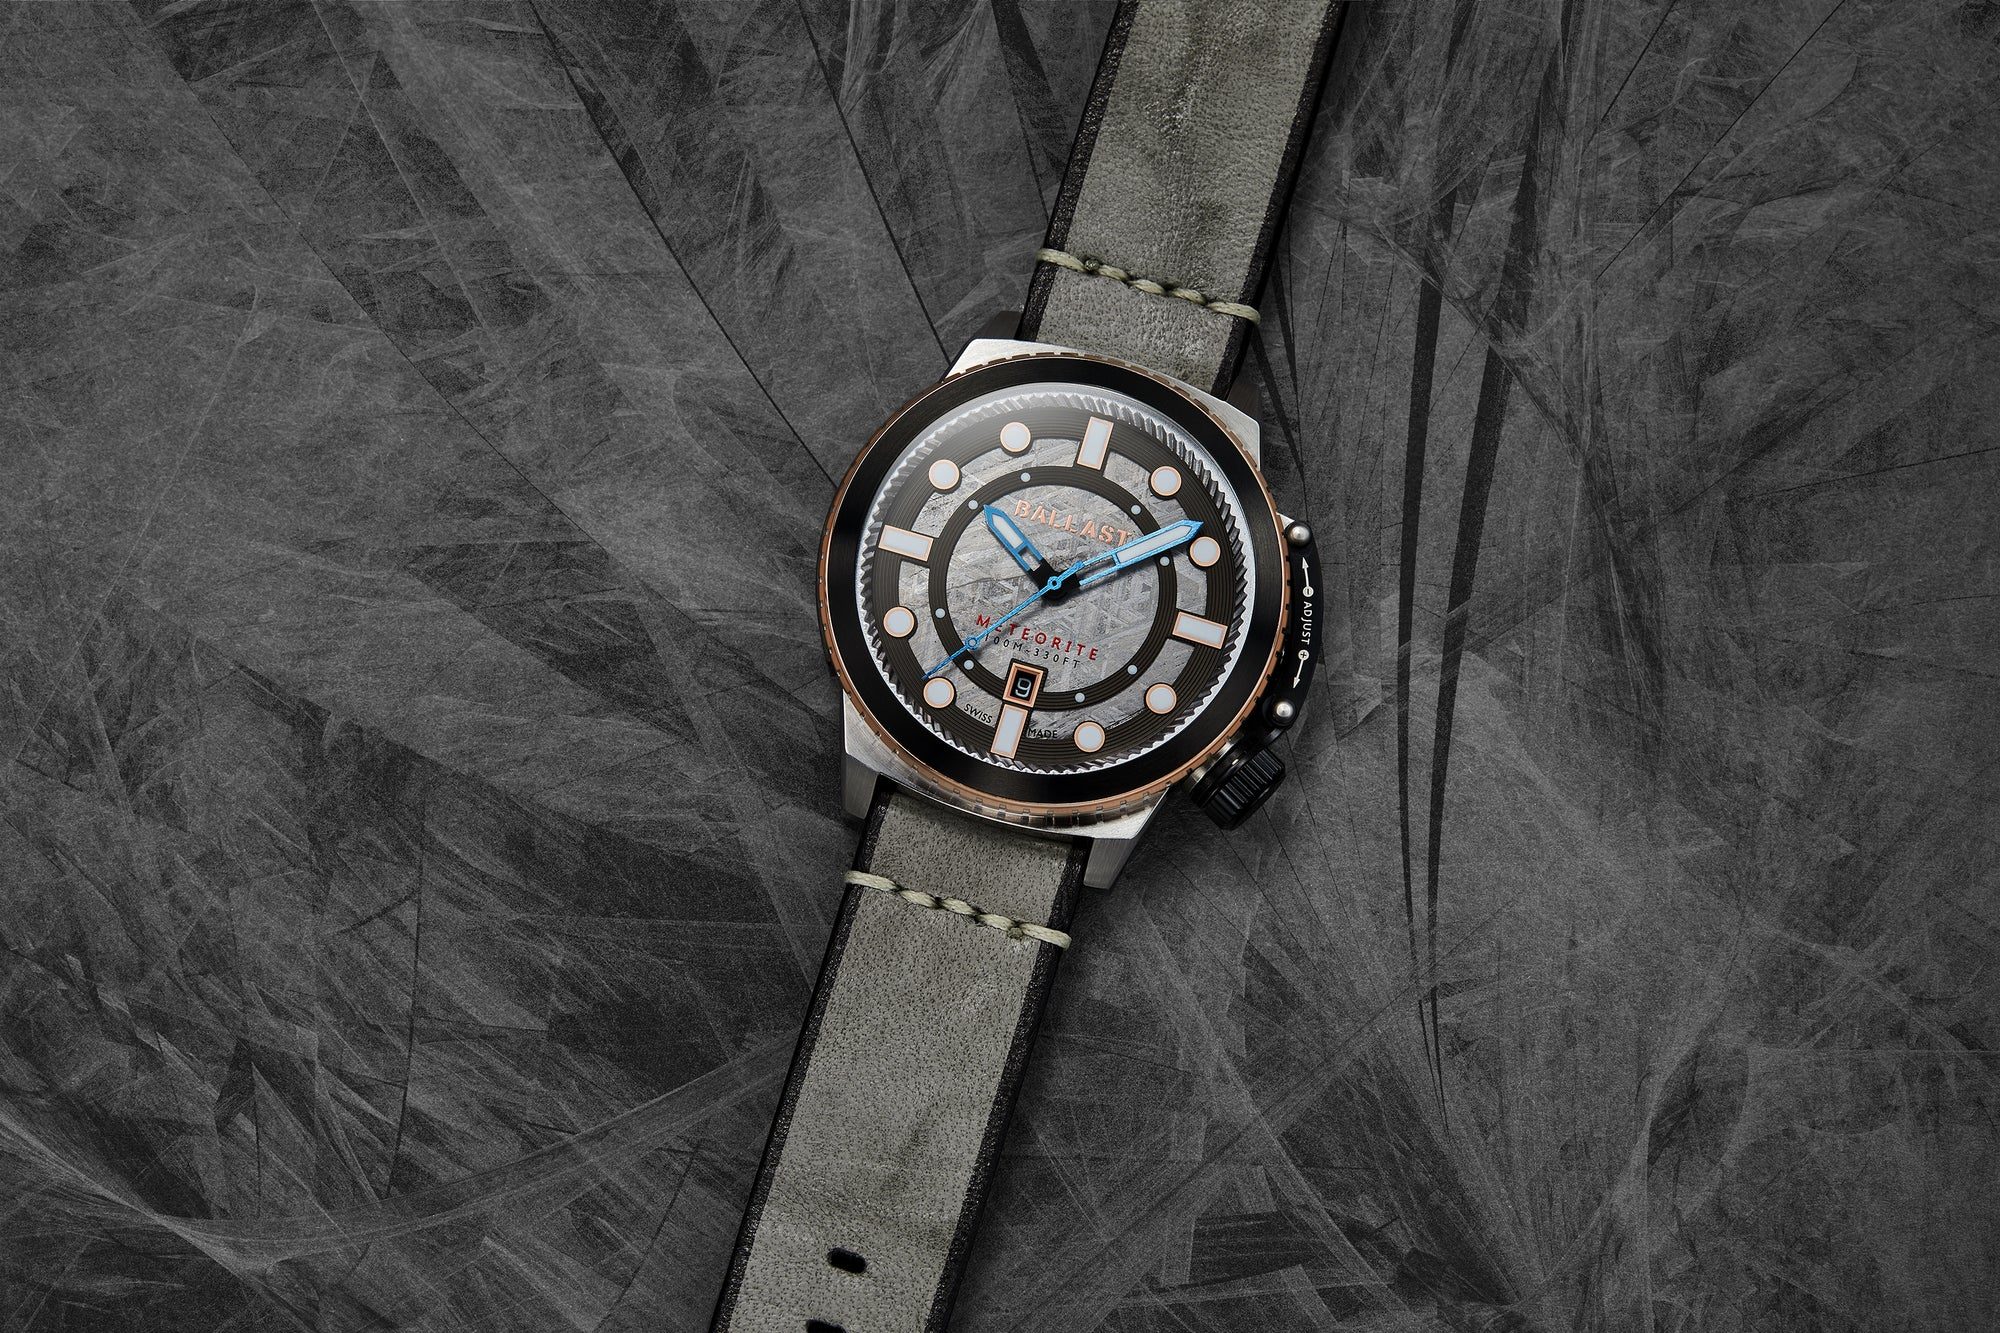 Trafalgar Conqueror Meteorite Swiss Made-Limited Edition BL-3139